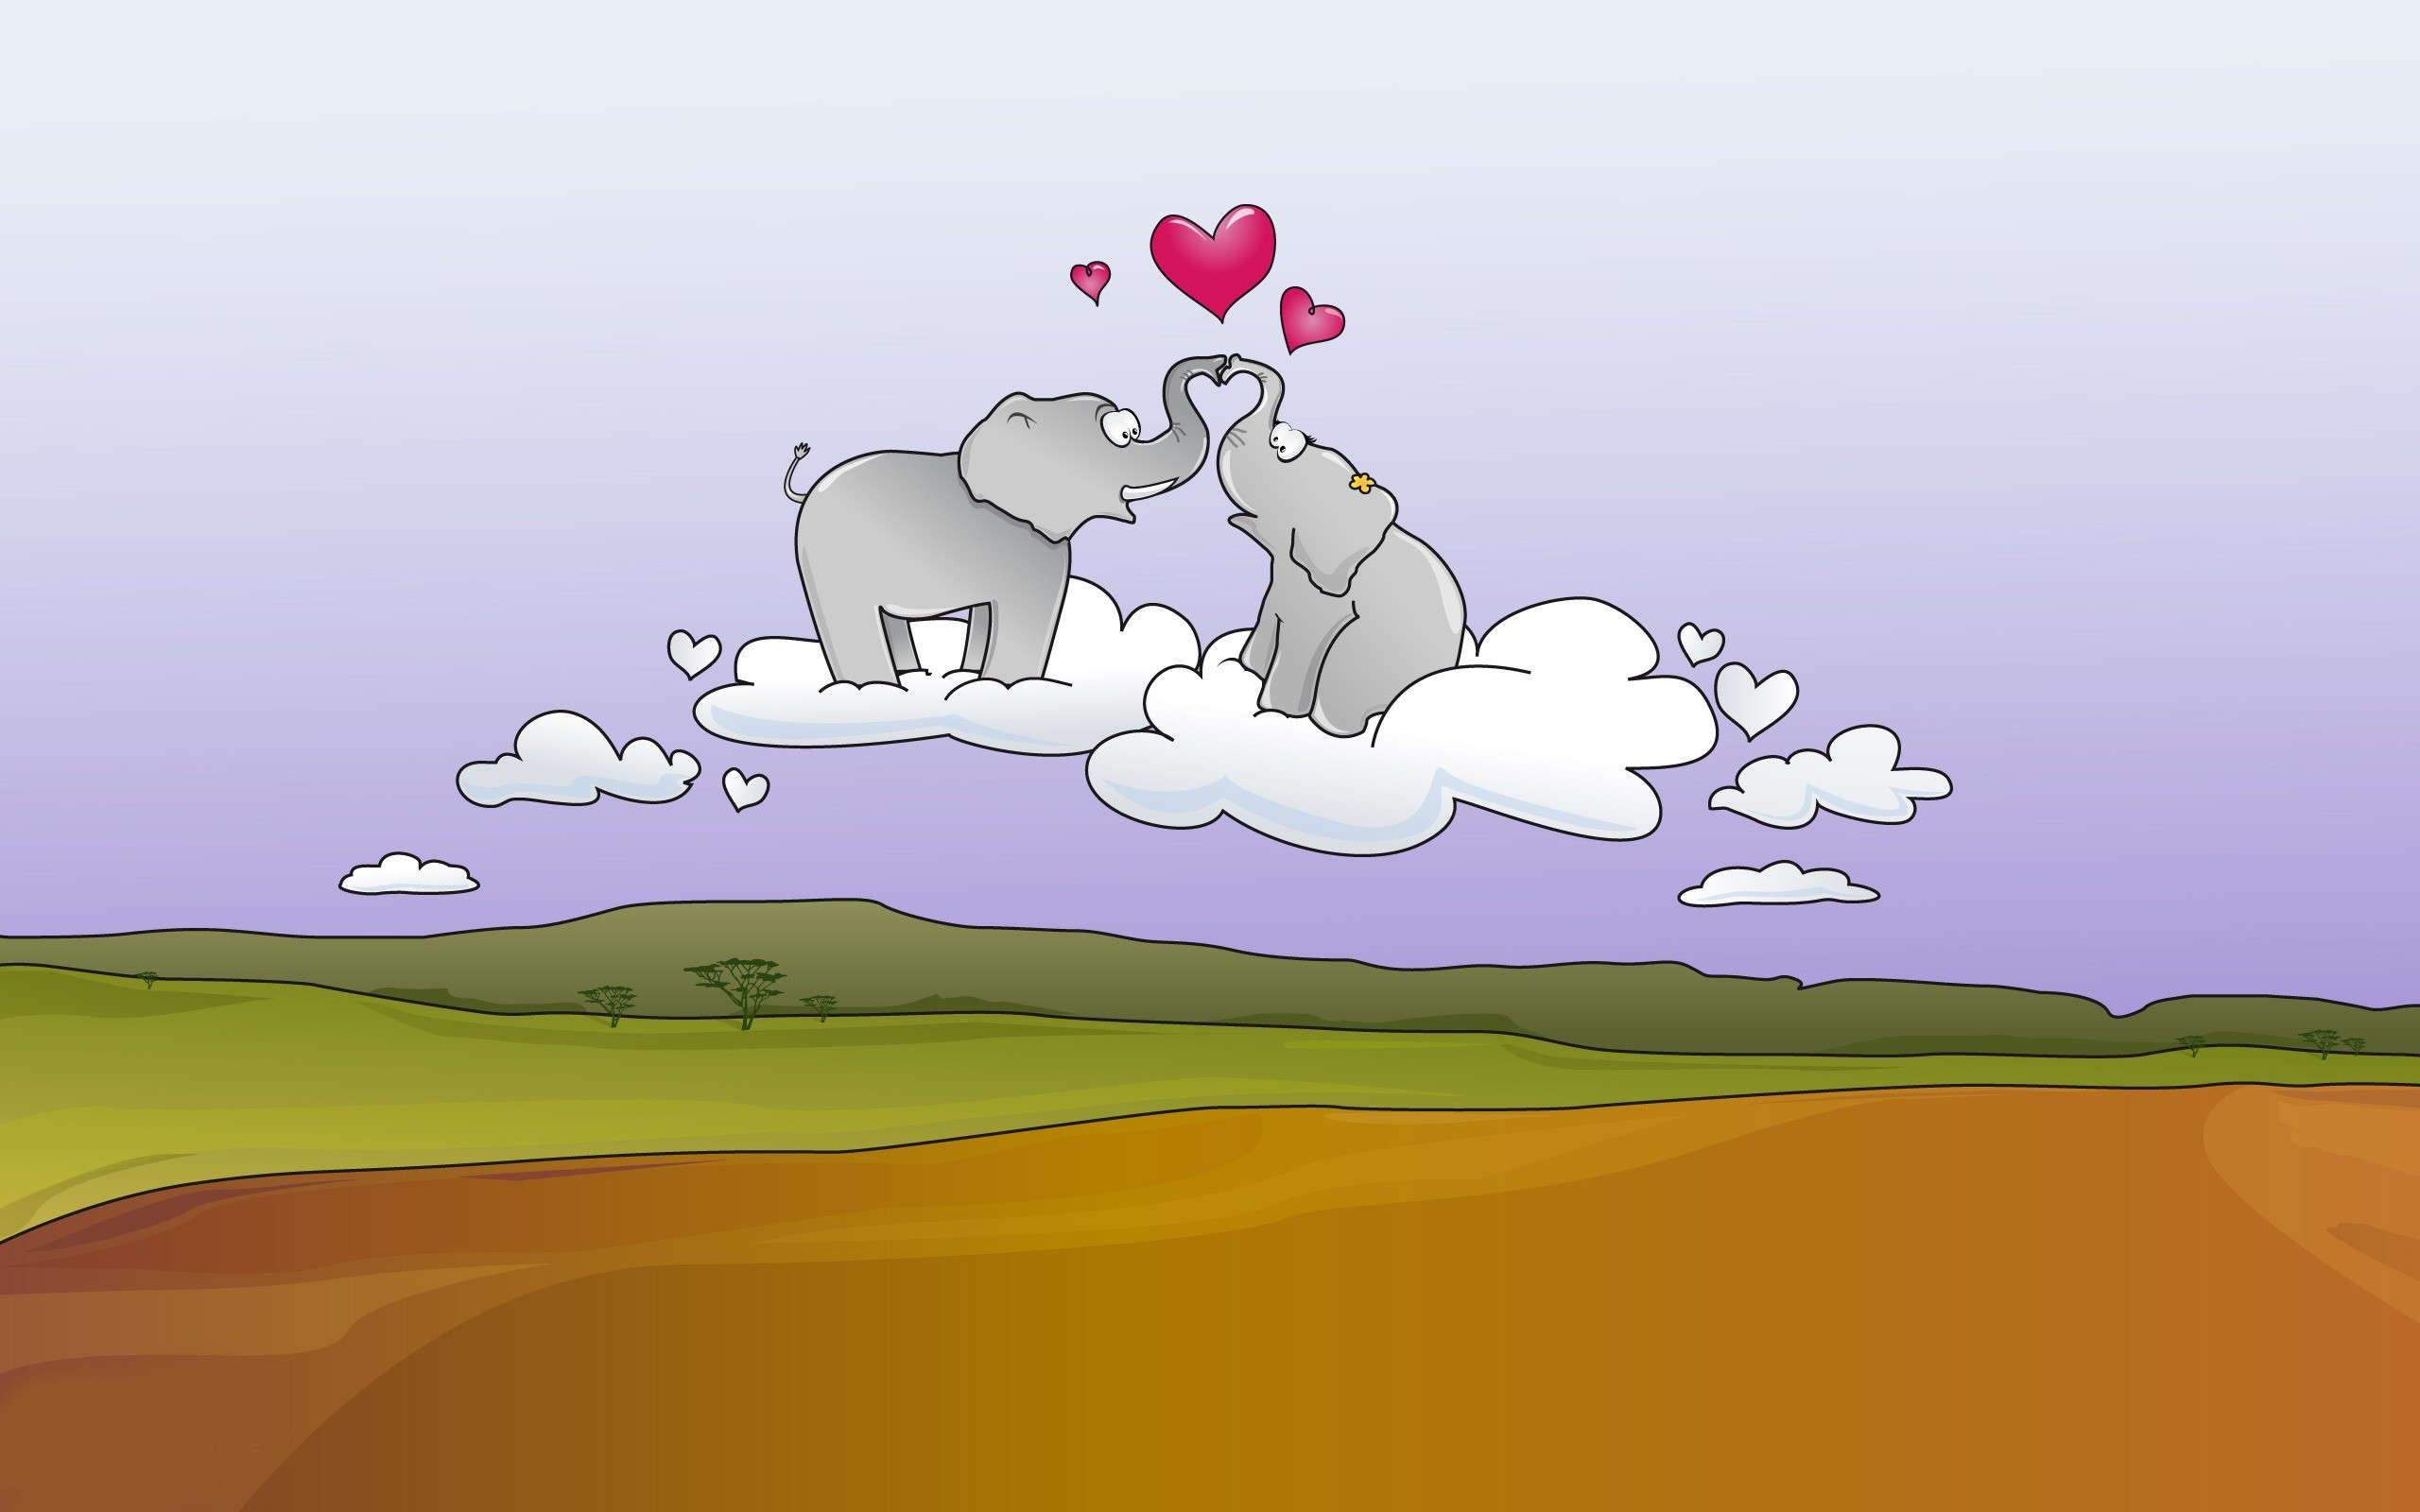 cartoons love elephants HD Wallpaper